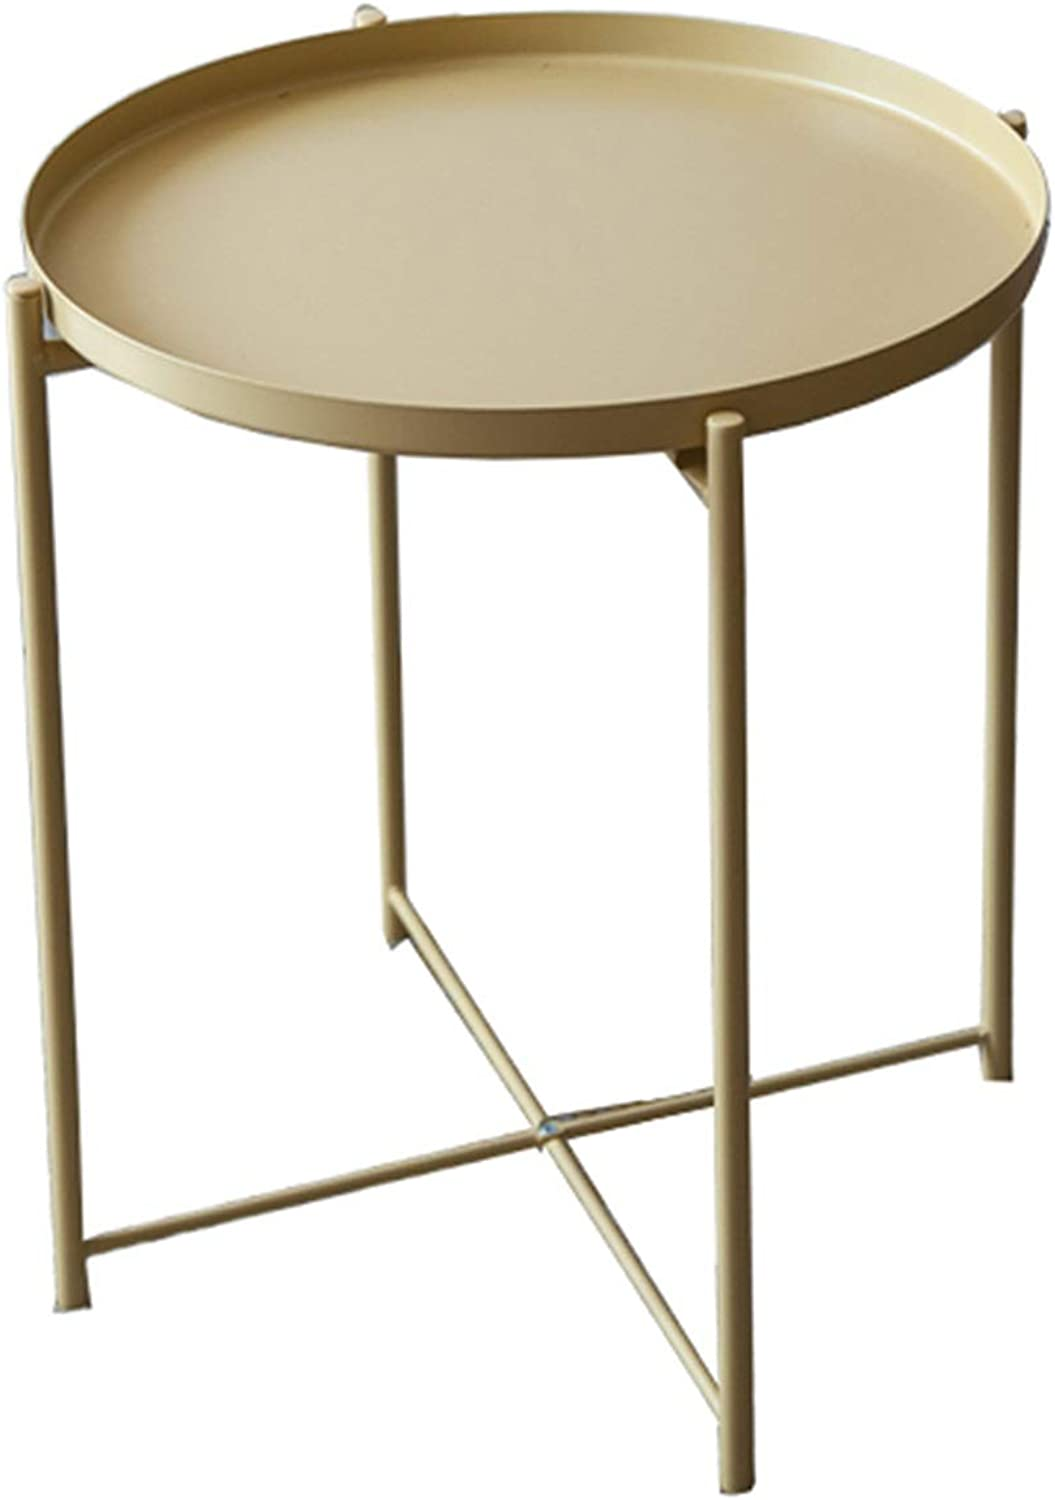 Wrought Iron Side Table Coffee Table, Simple Modern Living ...